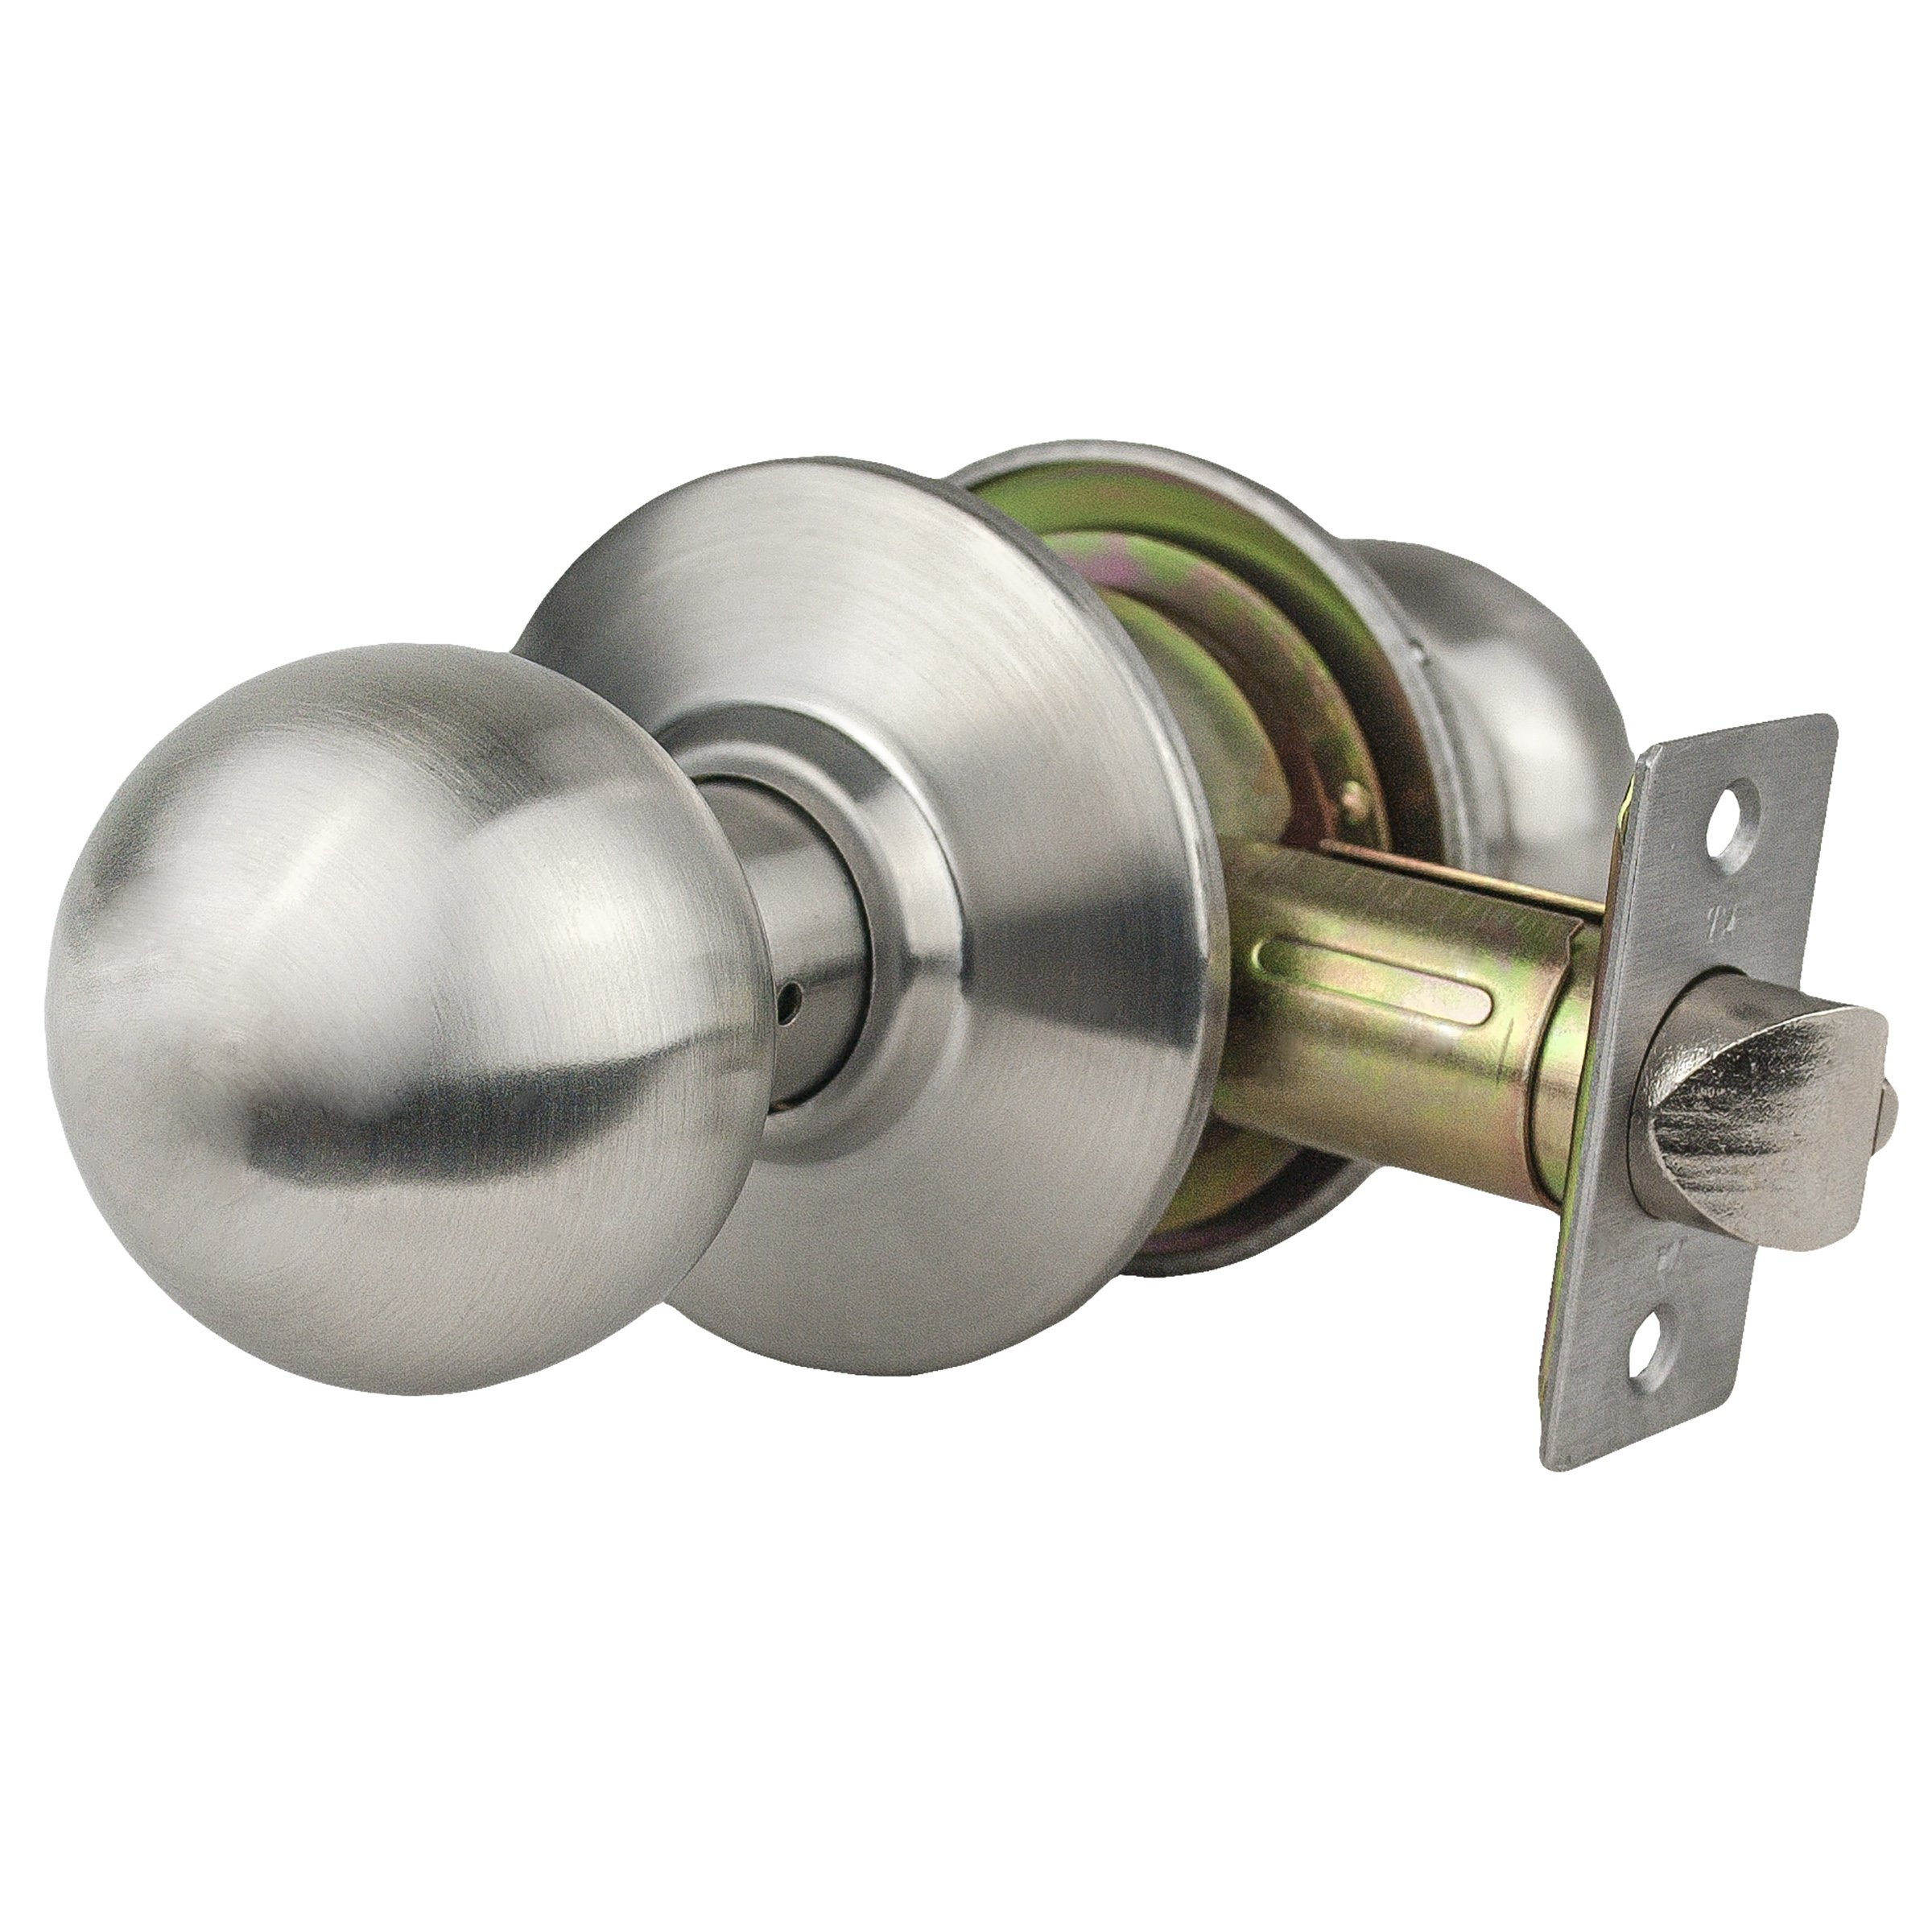 Global Door Controls GLC-5170B-626 Light Duty Commercial Cylindrical Dummy Knob In Brushed Chrome by Taco